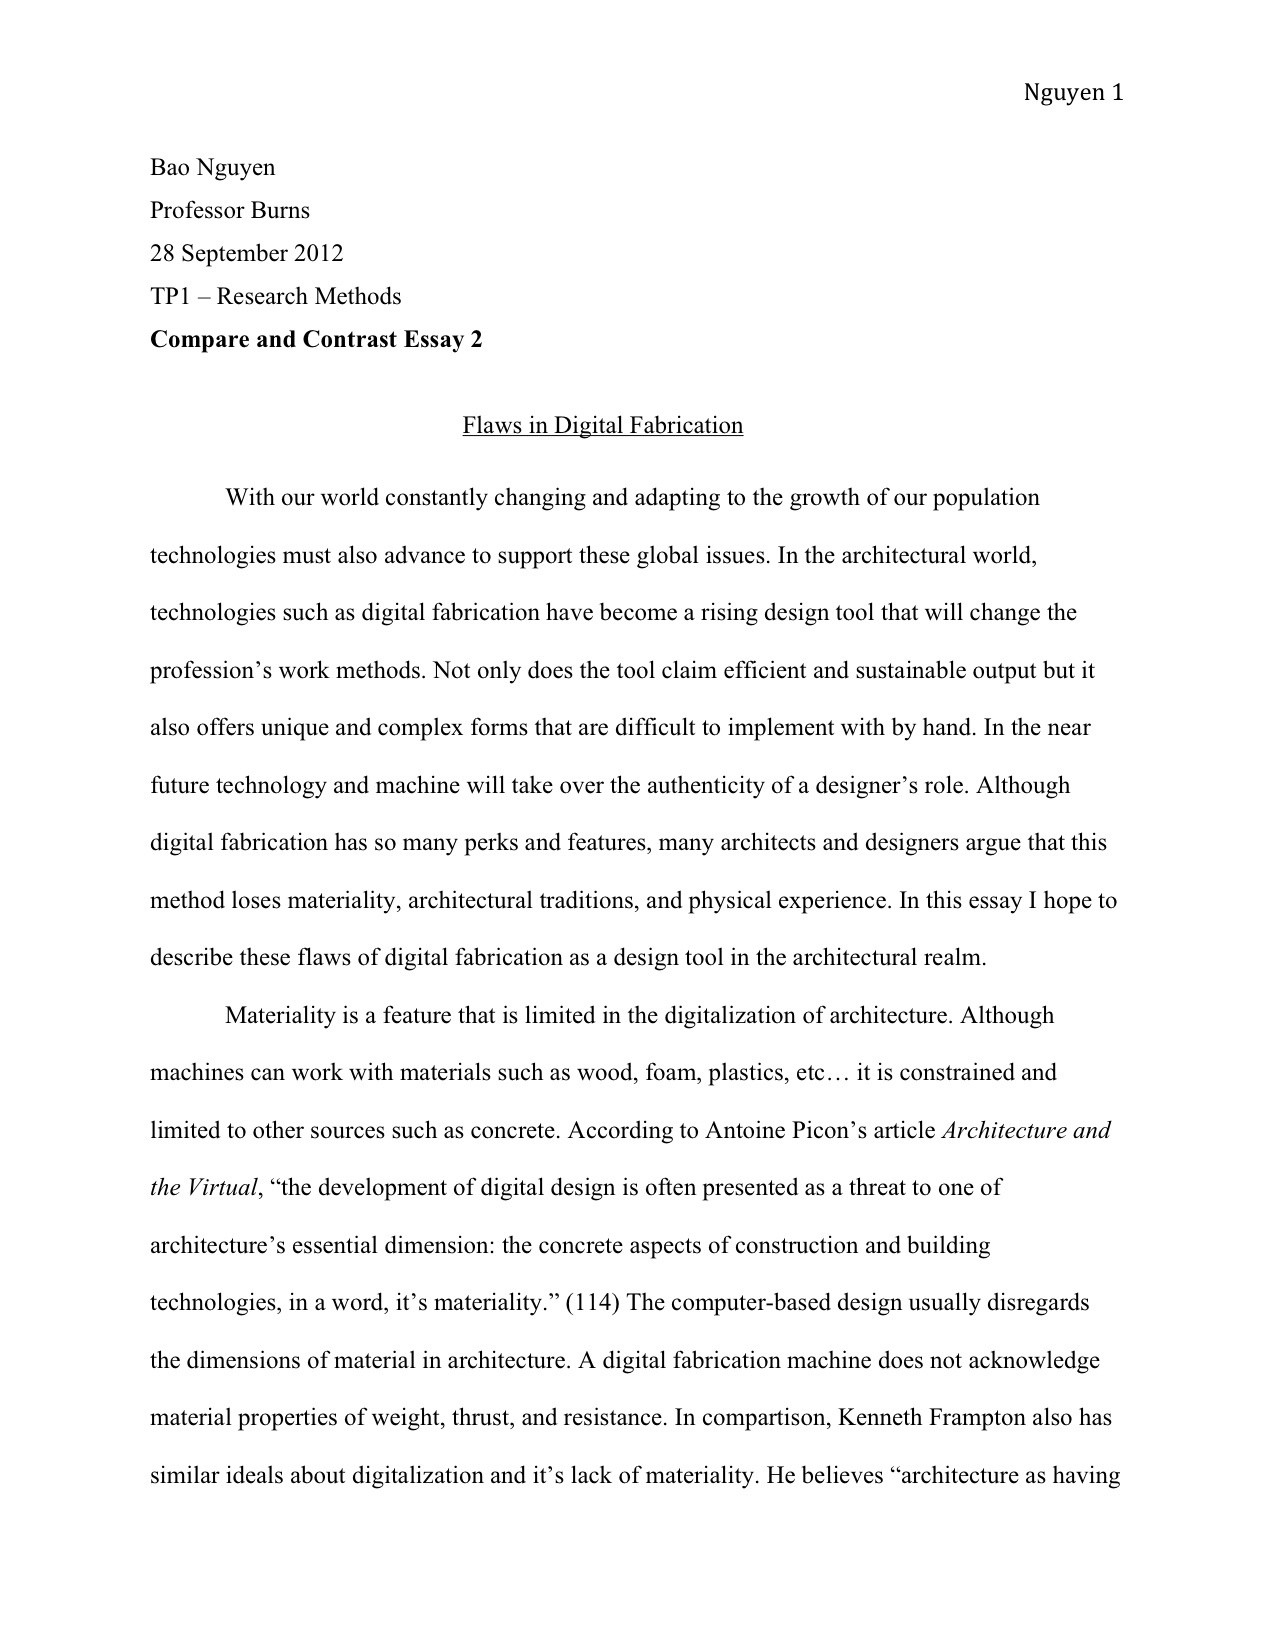 Conscience Essay  Health Essay Example also English Essay Ideas Thesis Statement Examples Expository Essay  Examples And Forms Essays About Science